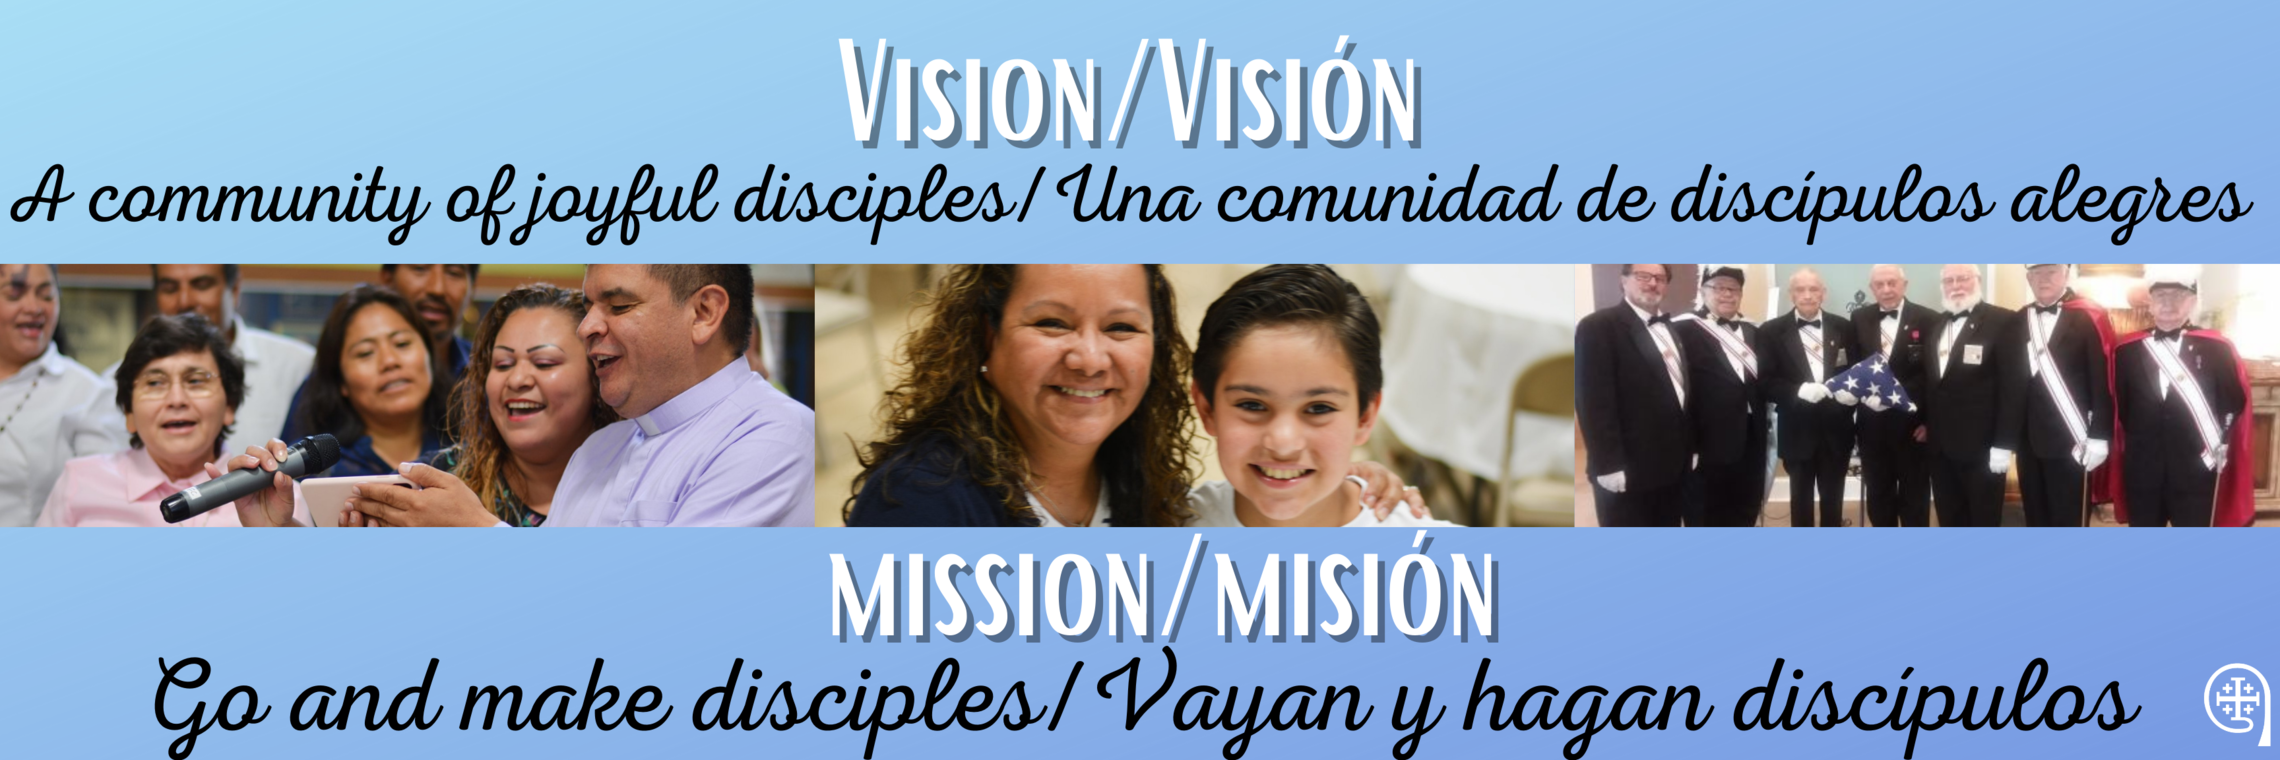 Mission And Vision For Website